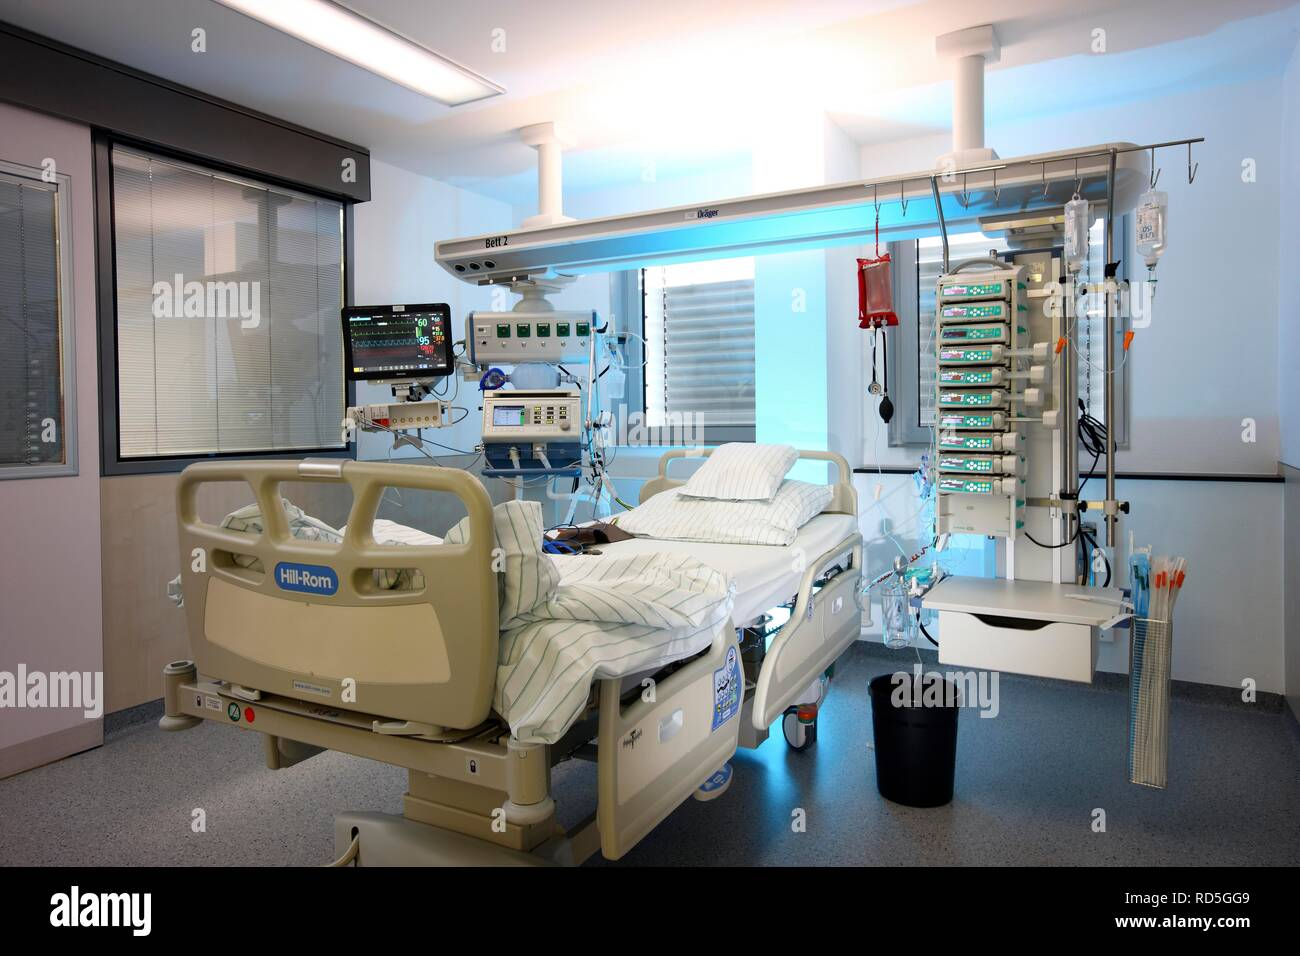 ICU or intensive care unit, empty patient bed ready for a new patient, medical equipment for the care, ventilation and - Stock Image